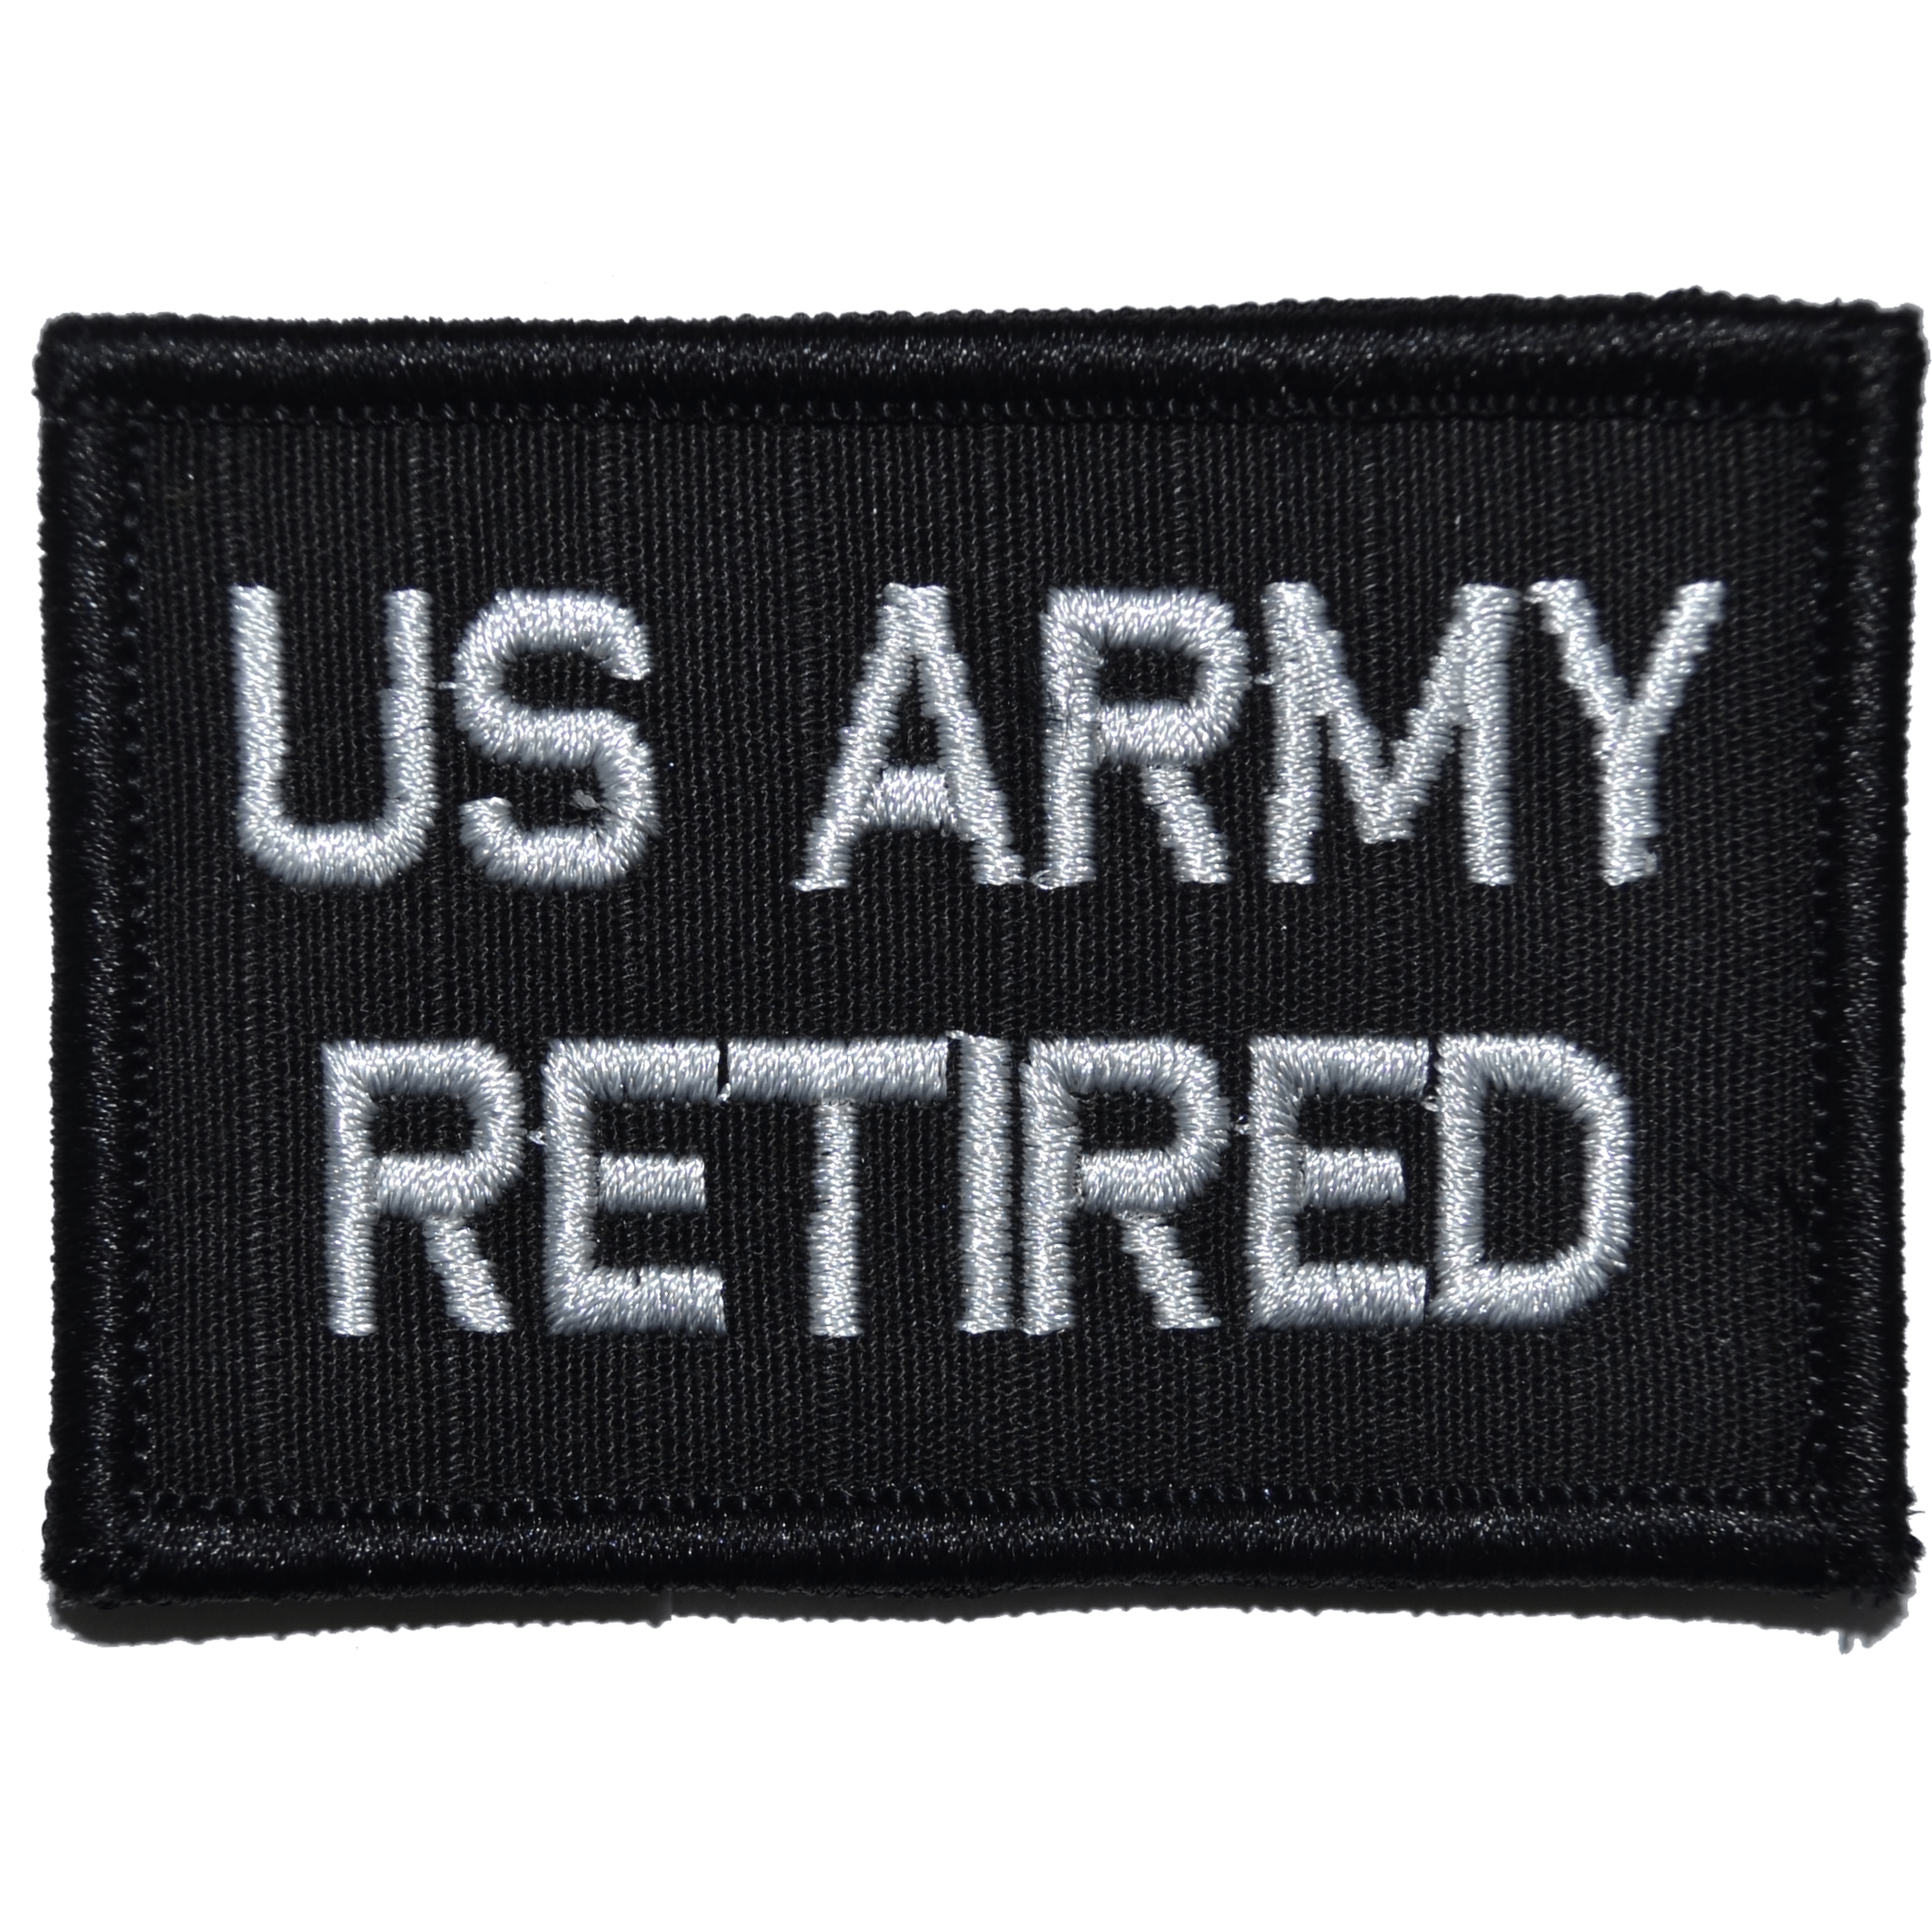 Tactical Gear Junkie Patches Black US Army Retired- 2x3 Patch